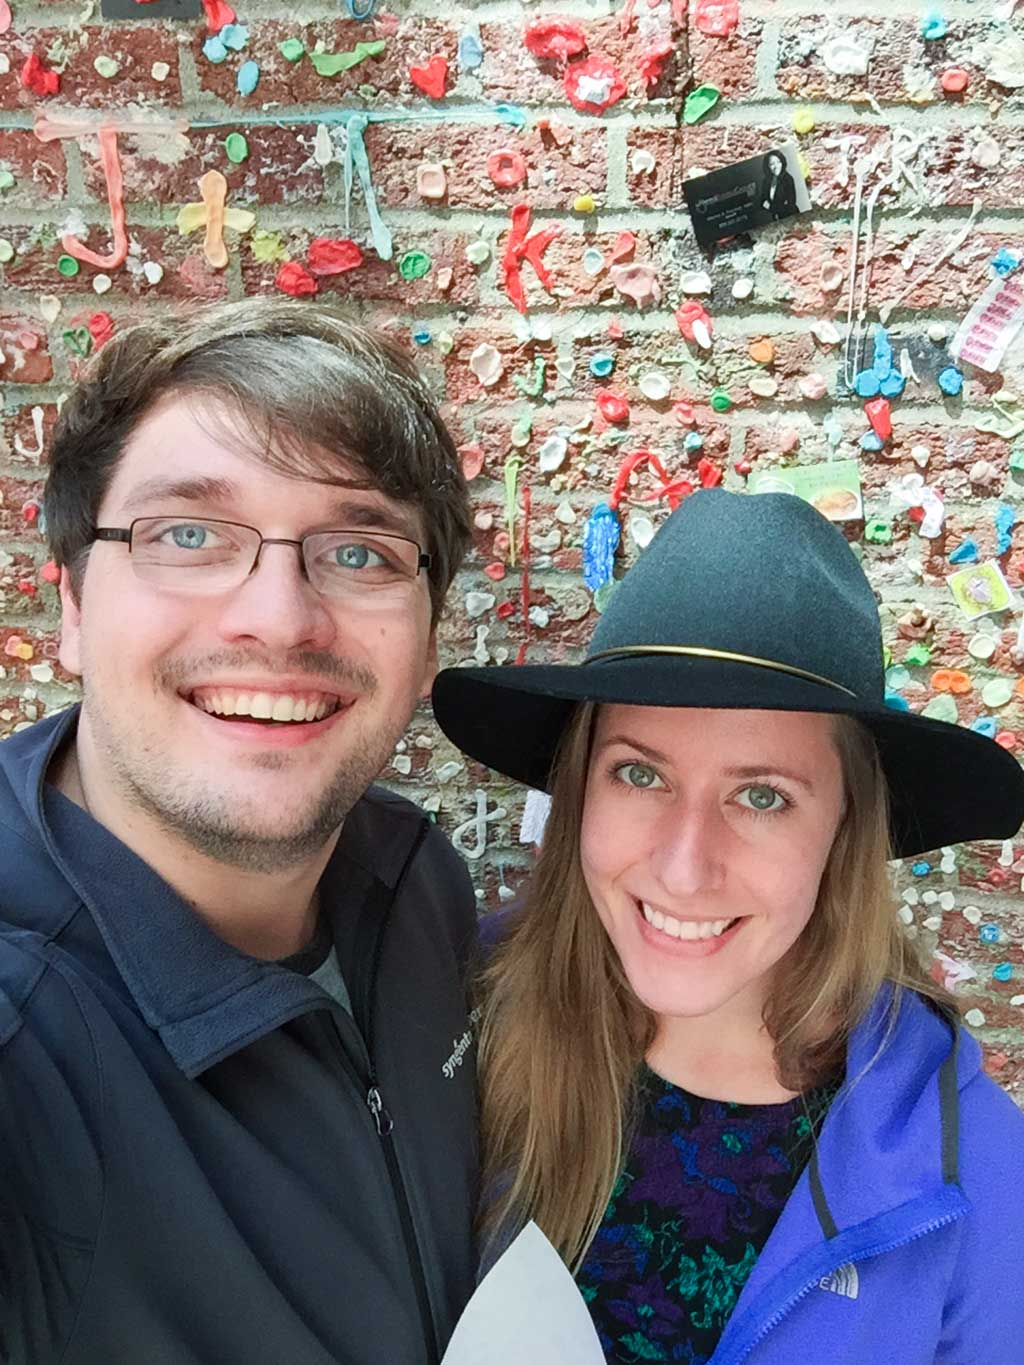 drive-swim-fly-seattle-washington-portland-oregon-vacation-2015-selfietrip-gum-wall